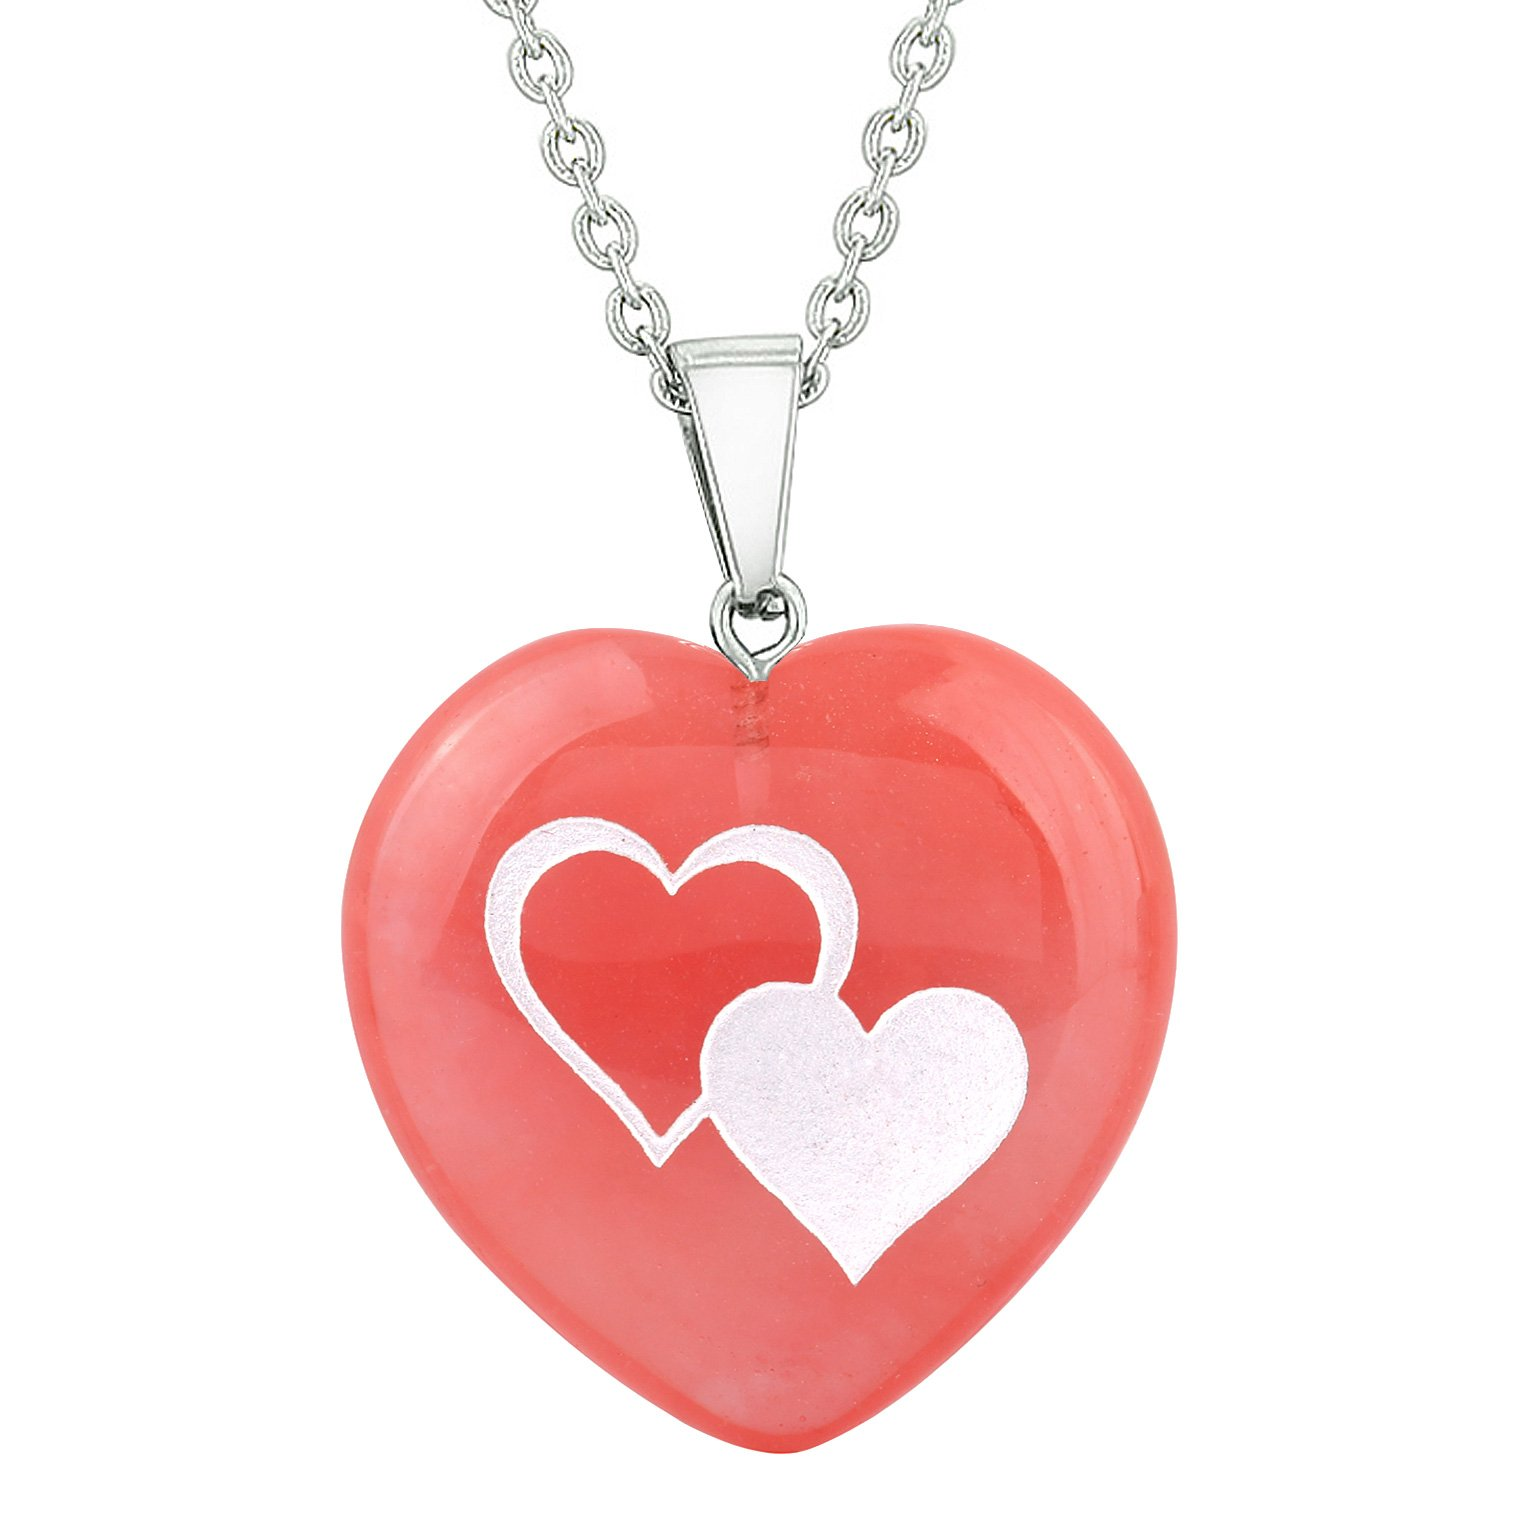 Amulet United Hearts Love Powers Energy Cherry Simulated Quartz Puffy Heart Pendant Necklace